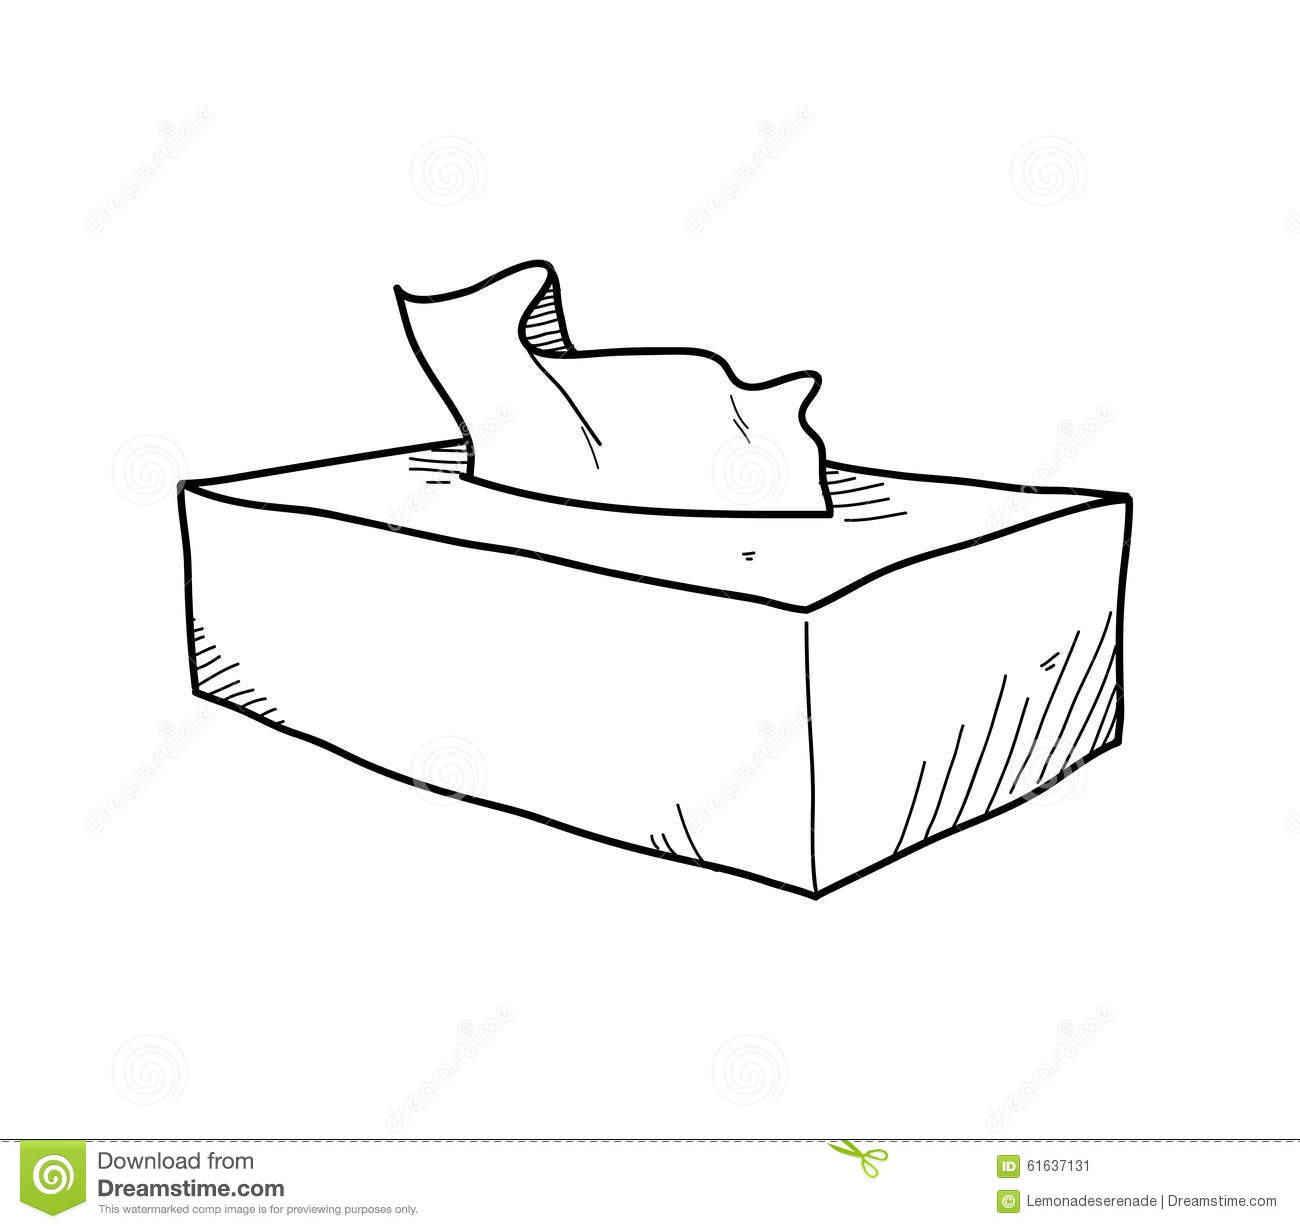 Tissue Box Doodle stock vector. Illustration of hospital